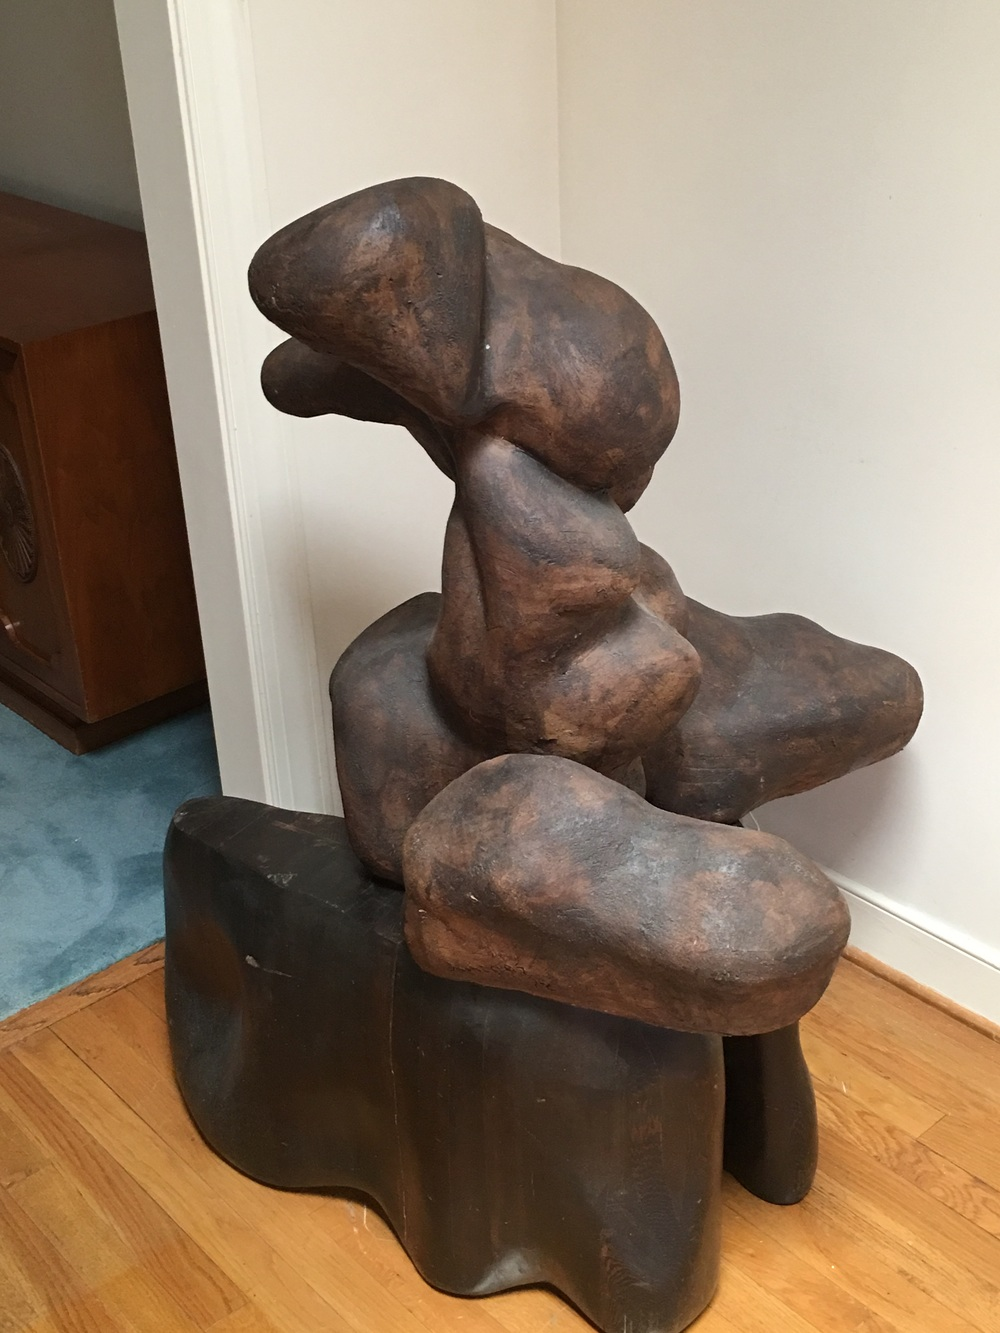 Original sculpture from local Richmond artist